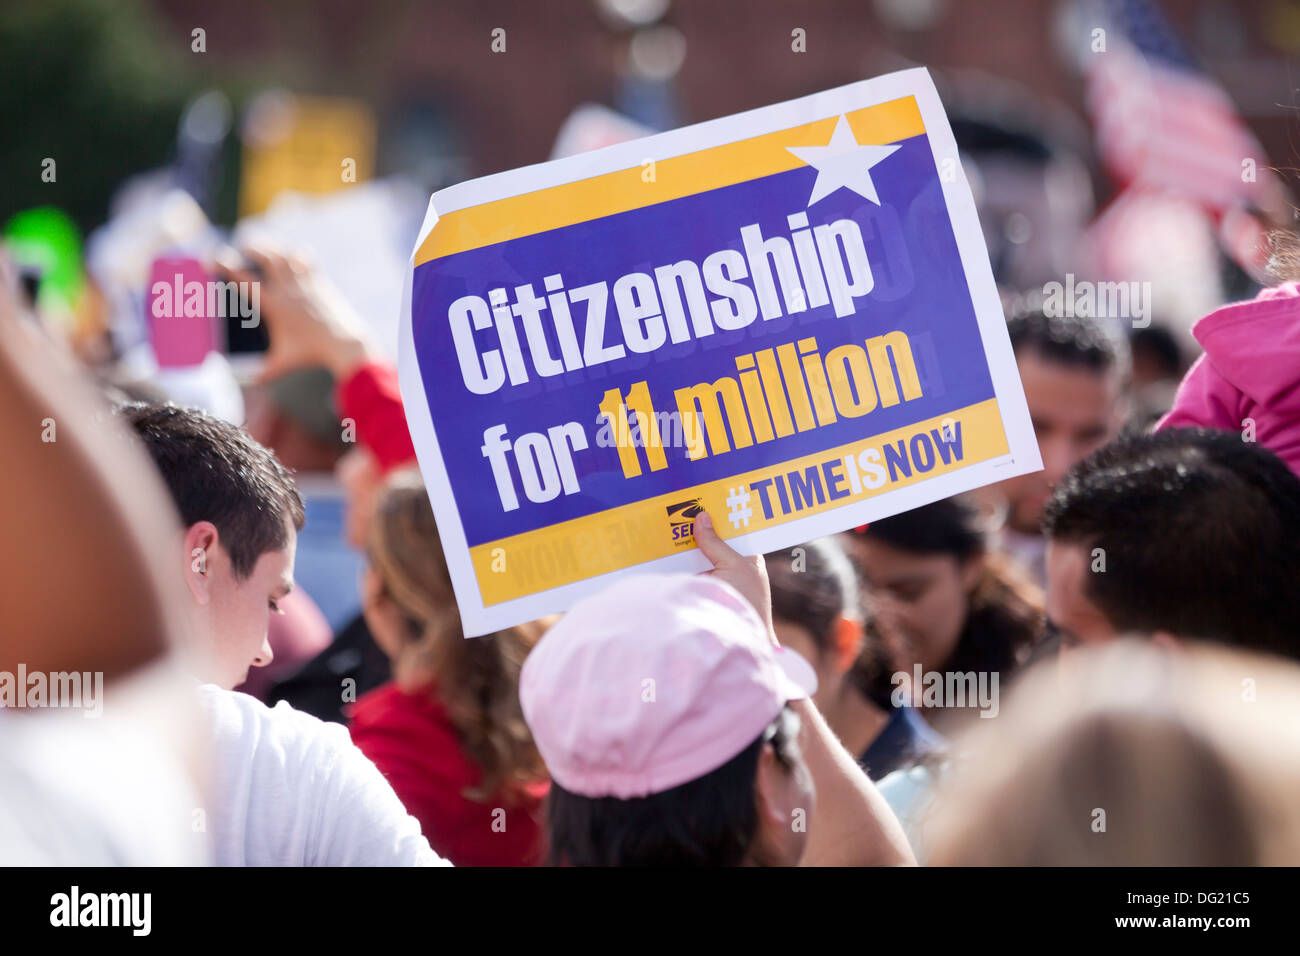 US Immigration Reform rally - Washington, DC USA - Stock Image